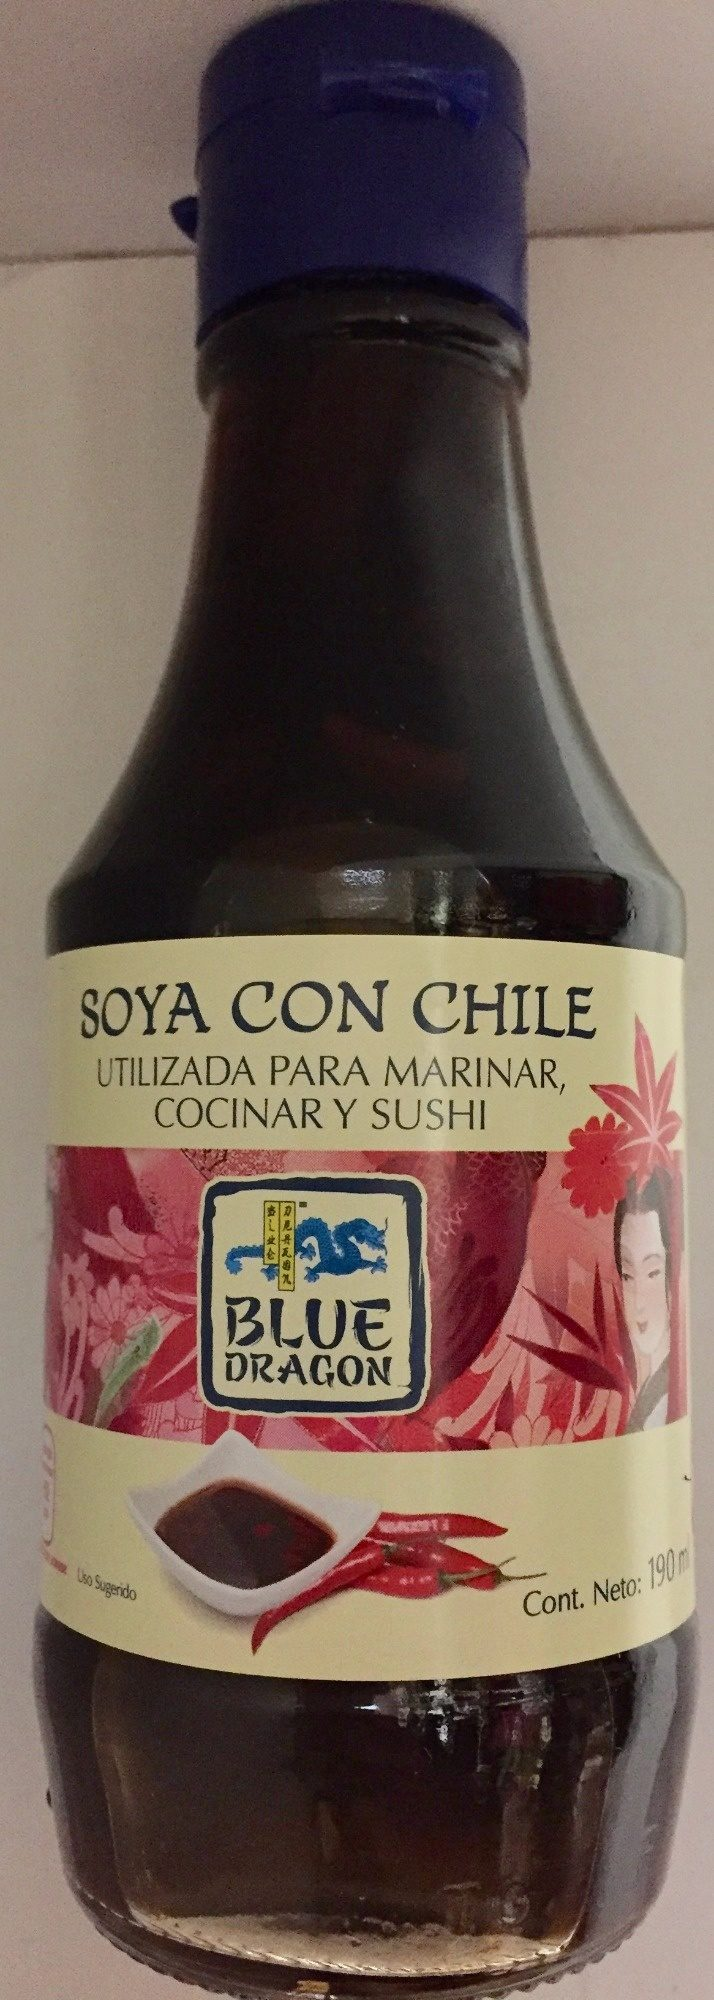 SALSA SOYA CON CHILE - Product